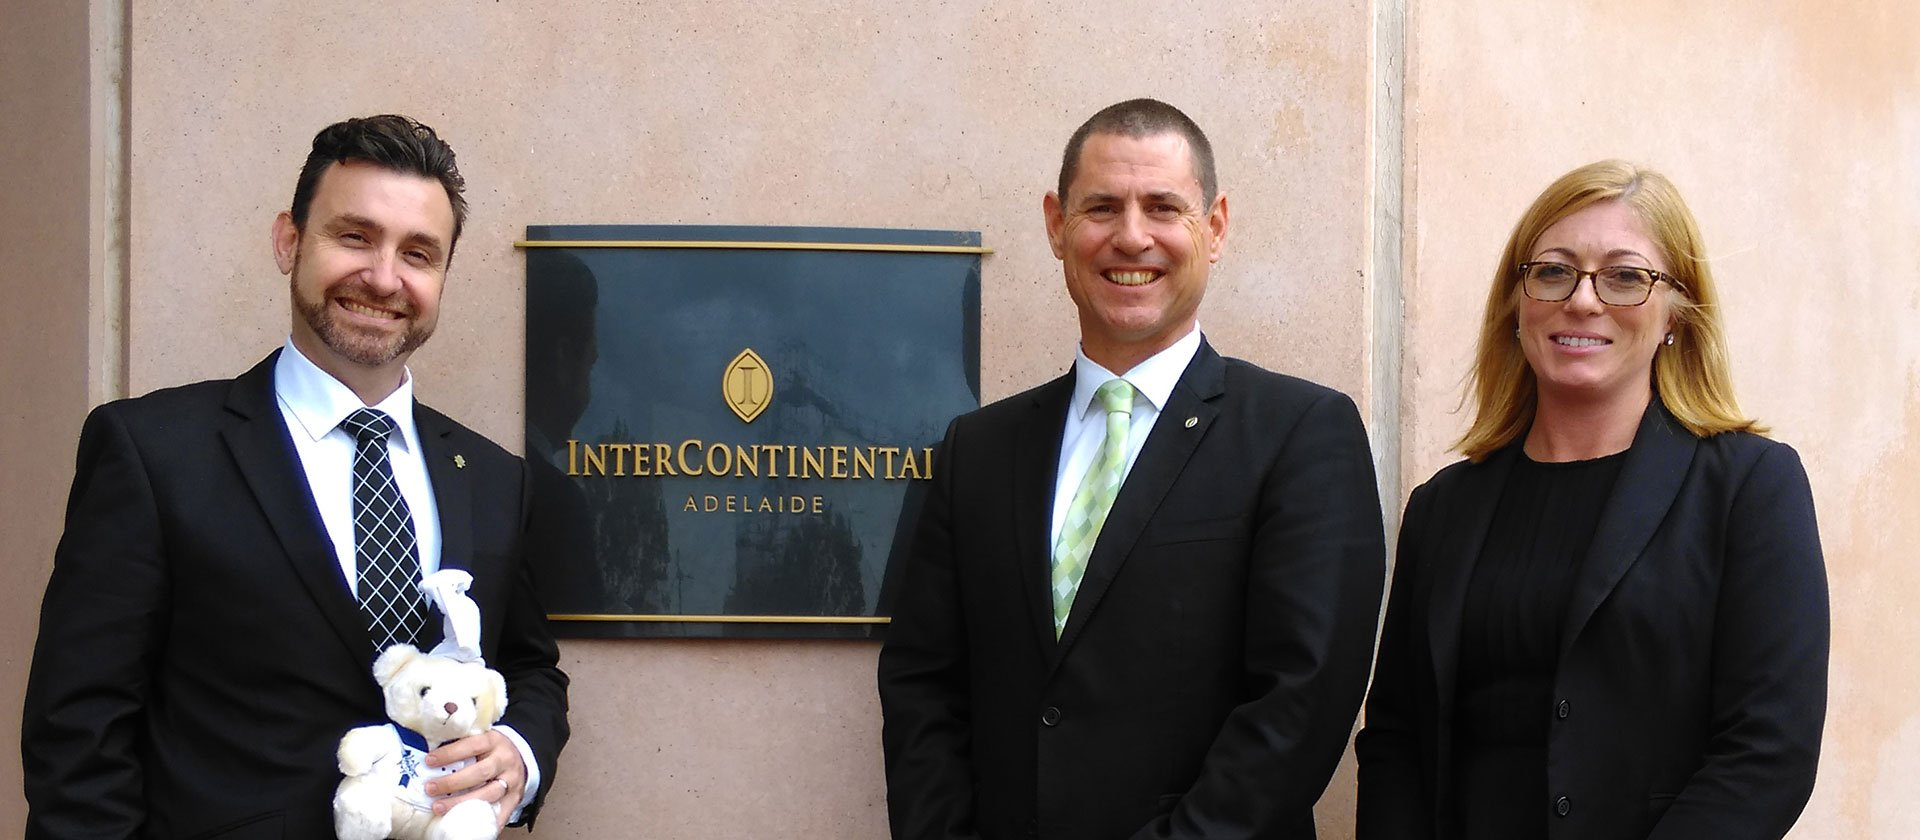 Le Cordon Bleu Australia and Intercontinental Adelaide sign partnership